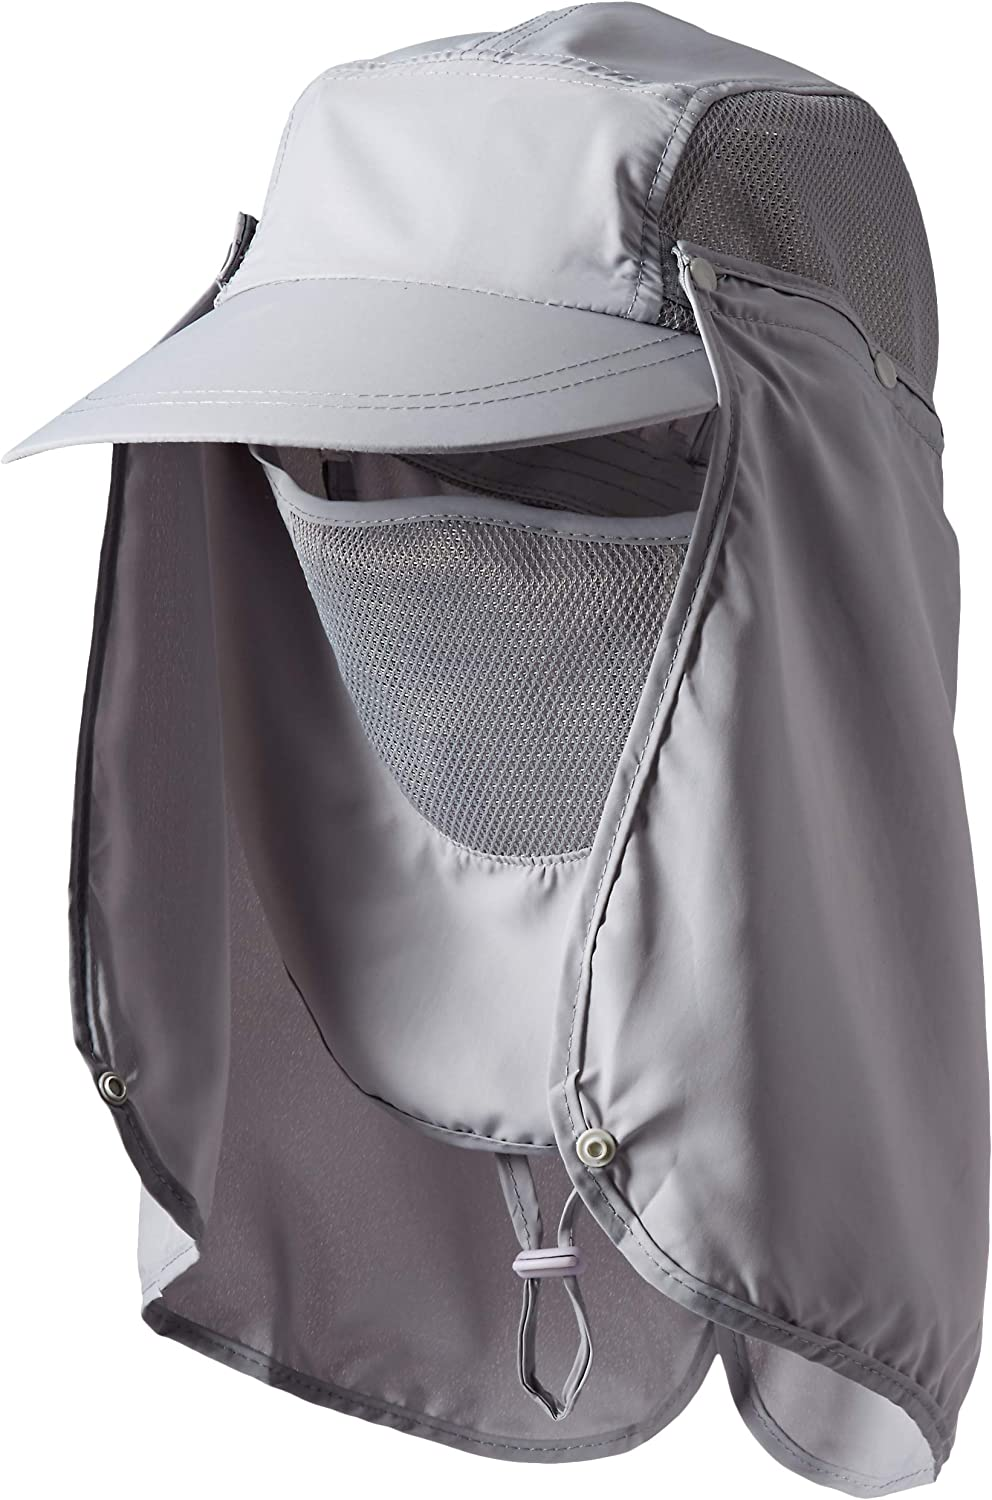 YINGEE Outdoor Fishing Hat, 360 UV Sunscreen Sun Hat Removable Neck And Mask Cap, Solar Protection UPF 50 Outdoor Garden, Fishing Outdoor Activities